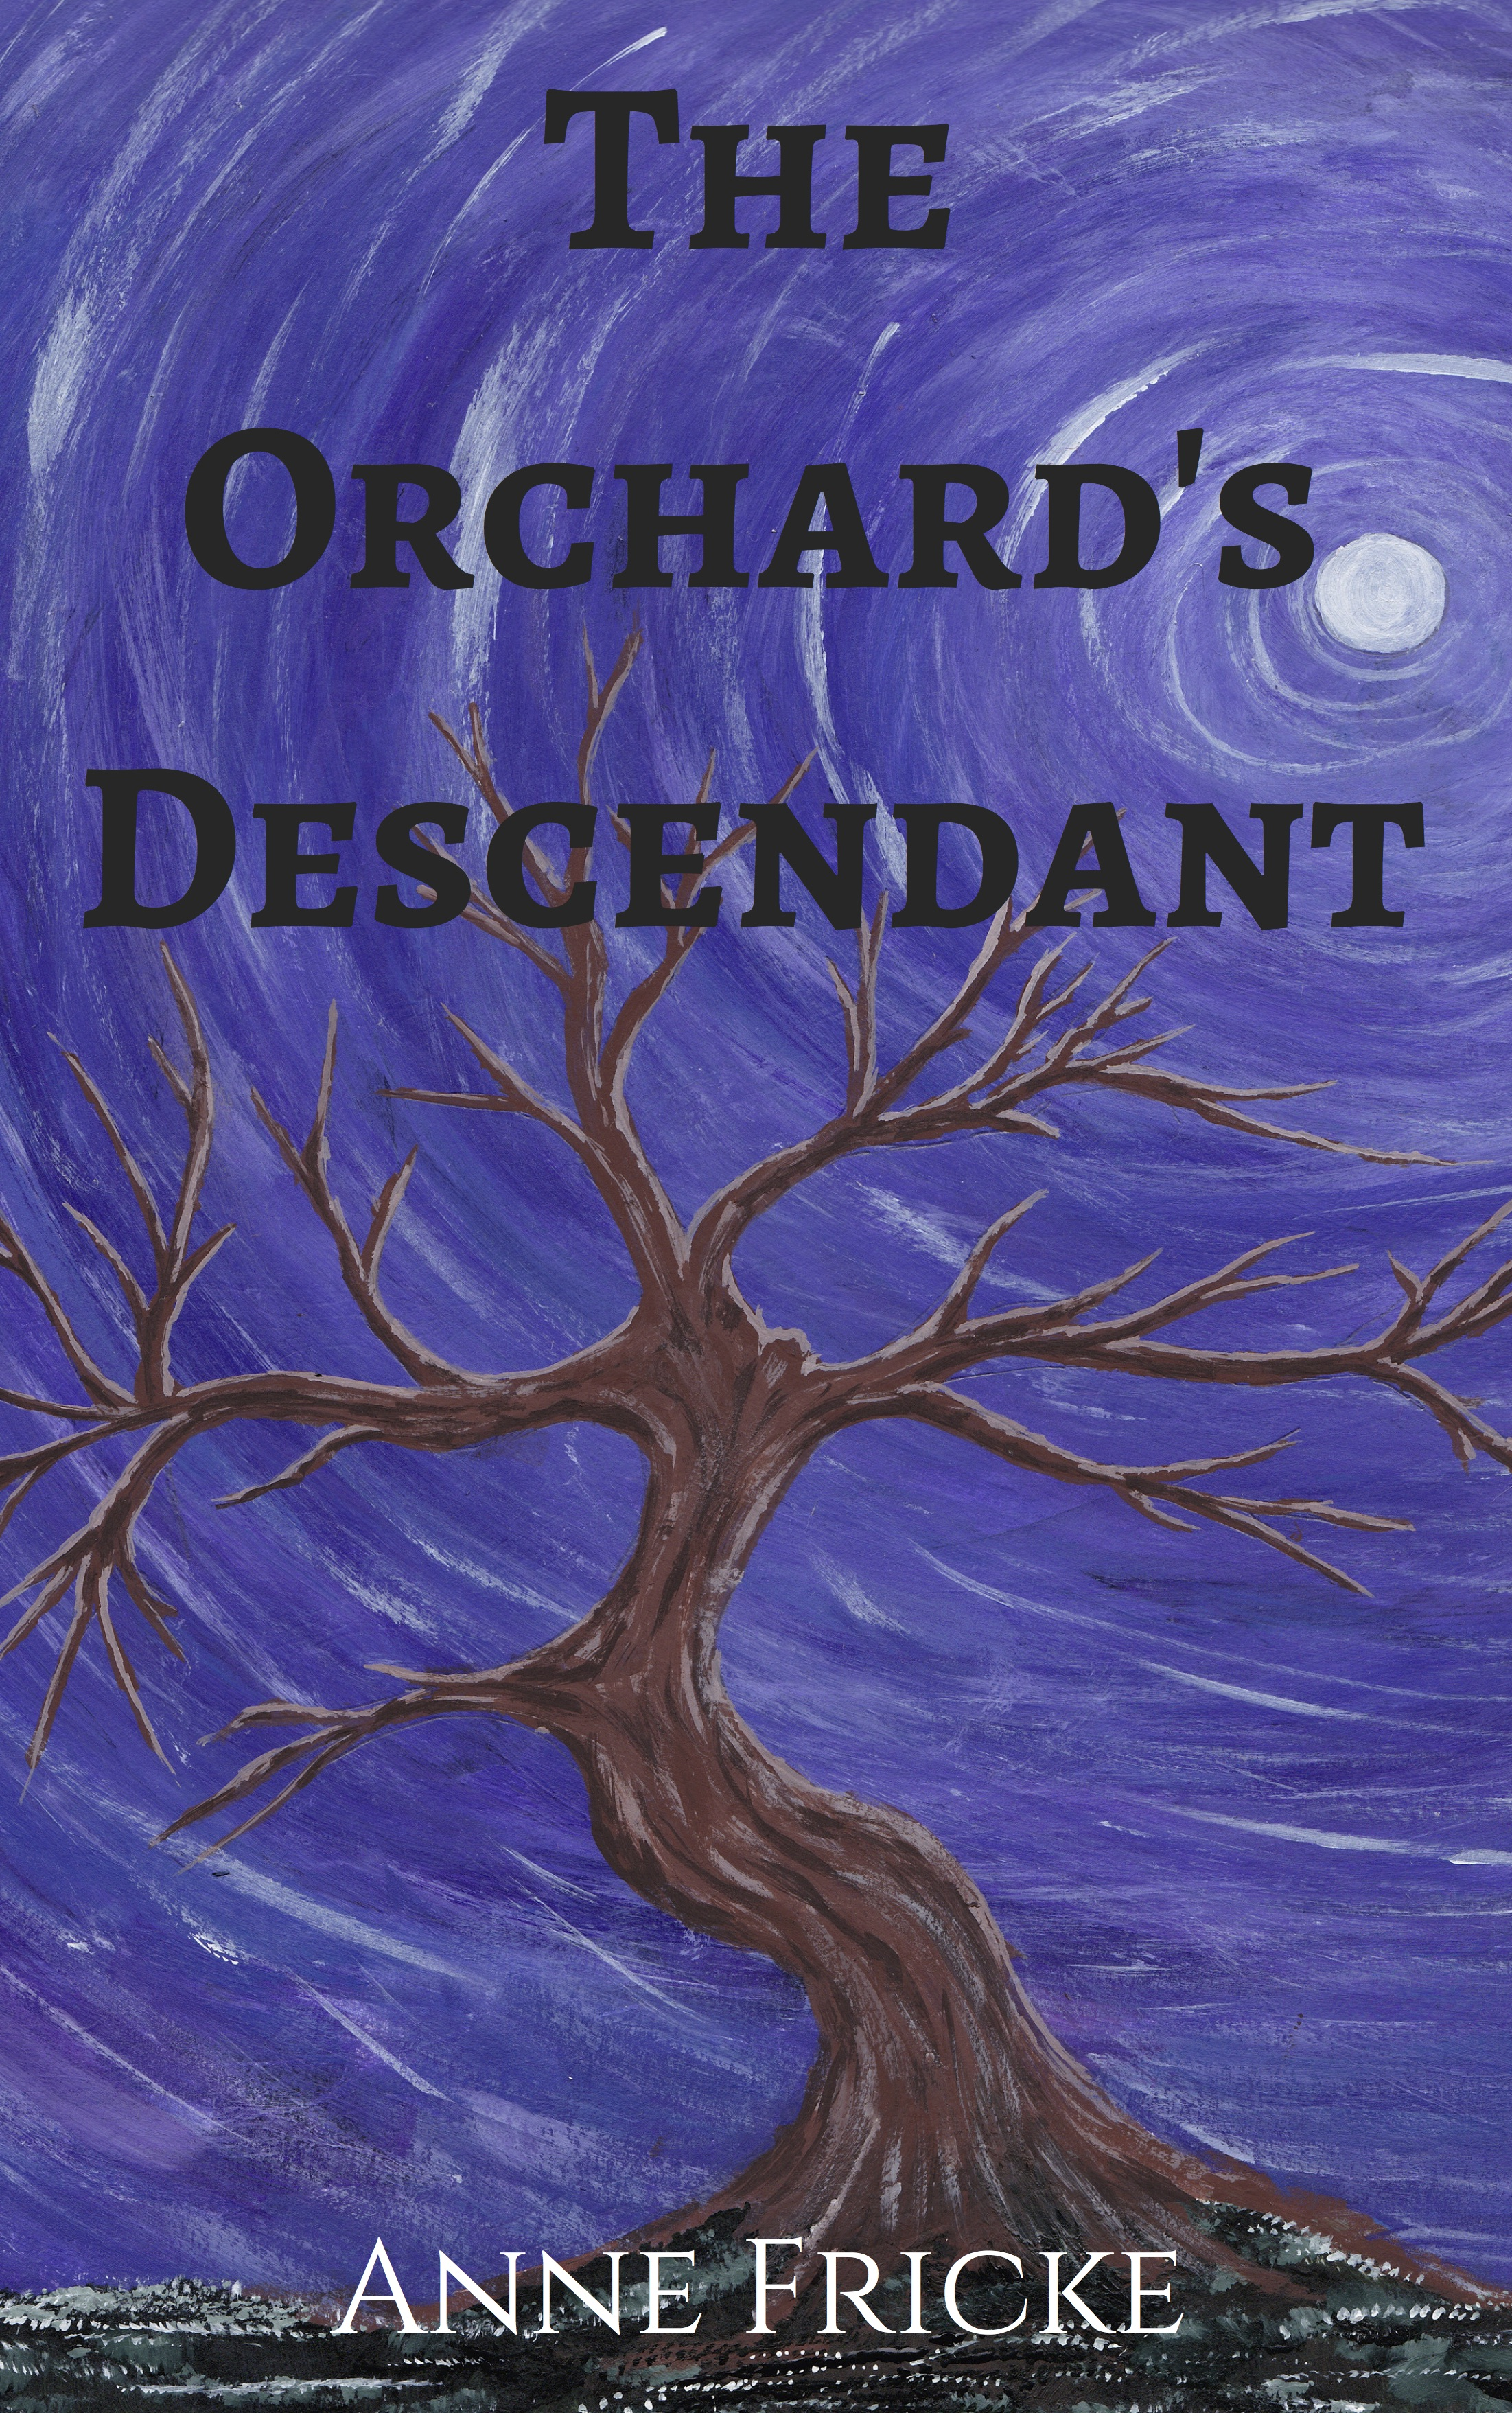 The Orchard's Descendant - Feeling she has little choice, Maggie leaves her beloved community for a century-old farmhouse in the hills of Northern California. She is hoping to grow some roots. What she finds is a dilapidated house, a barn she can't bring herself to go into and one family's tragedy.A daughter sent away and never heard from again, a father dead in a snowstorm, and Daniel, the angry brother who has lived with the pain of it all for more than 70 years. Will Maggie be able to find the home she has been longing for in the house above the orchard? Will she be the key to a brother's redemption? A tale of love, deceit and mystery, The Orchard's Descendant explores the idea of what it means to create